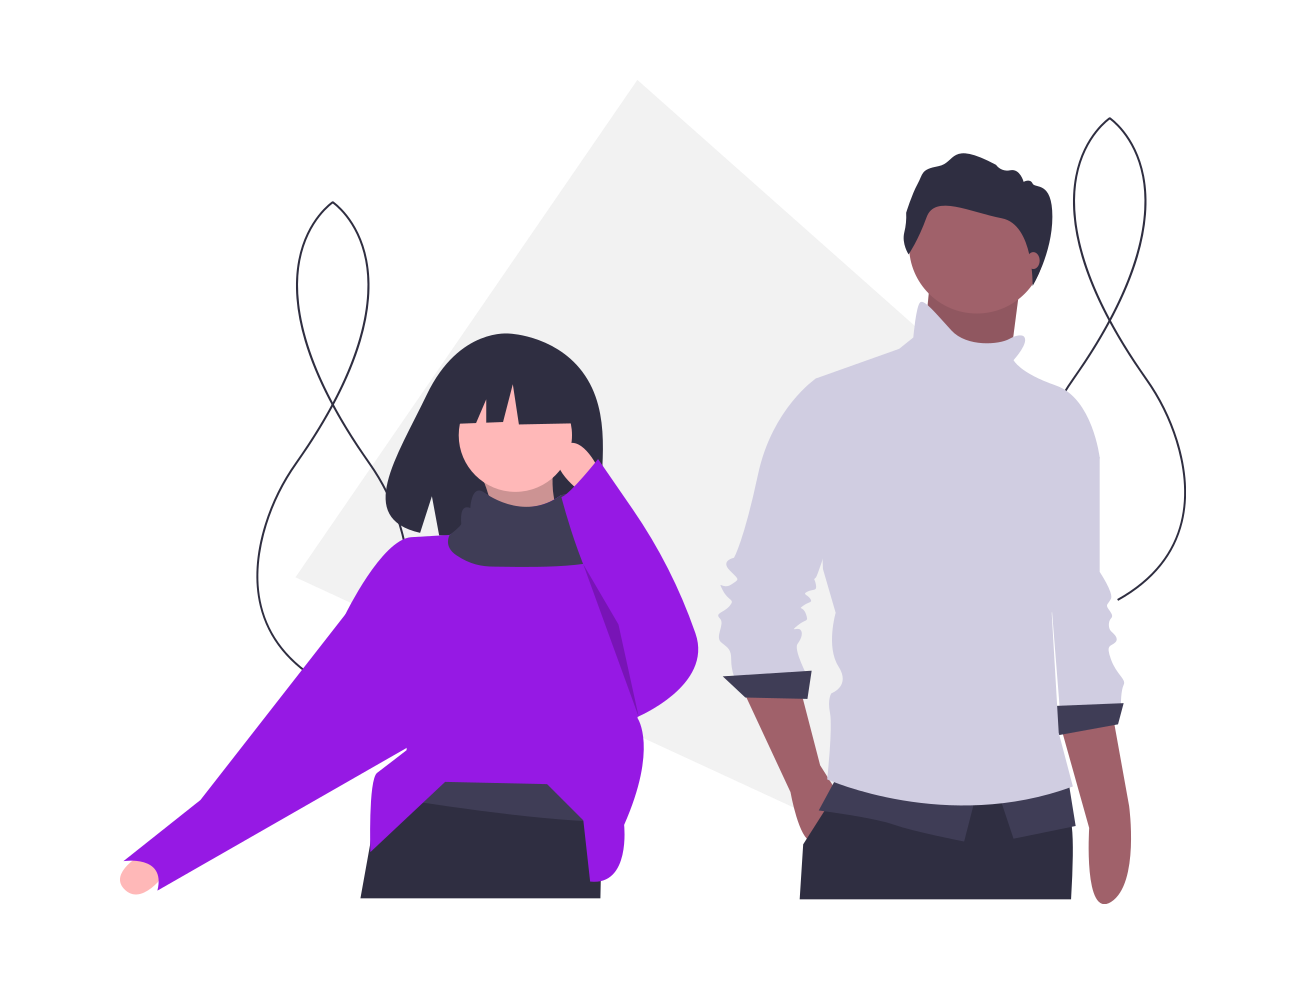 Illustration of two people next to each other.